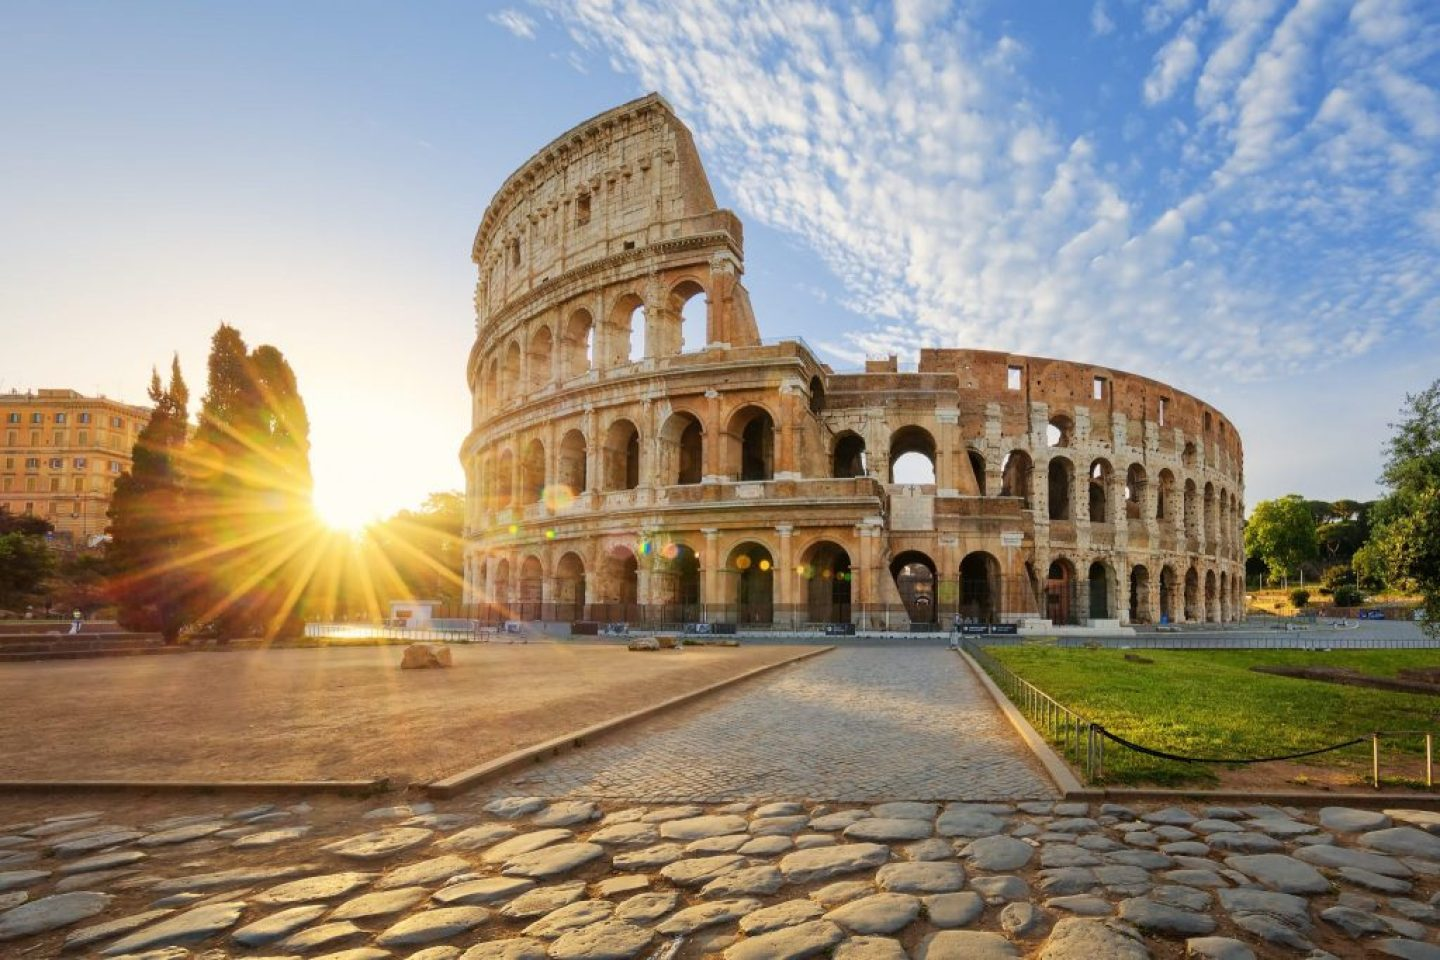 One Day In Rome: visit the Colosseum